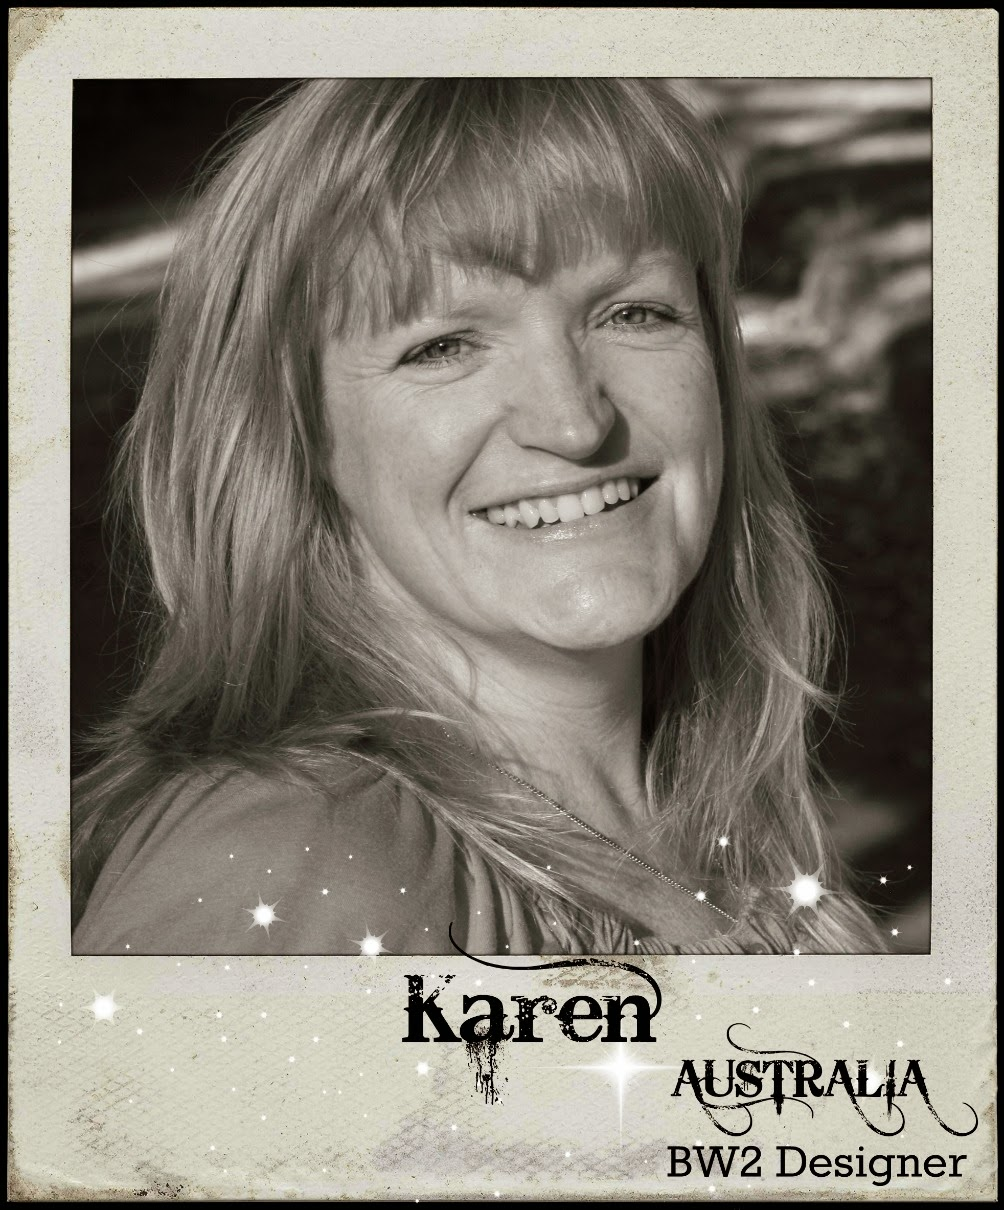 Karen McLaughlin